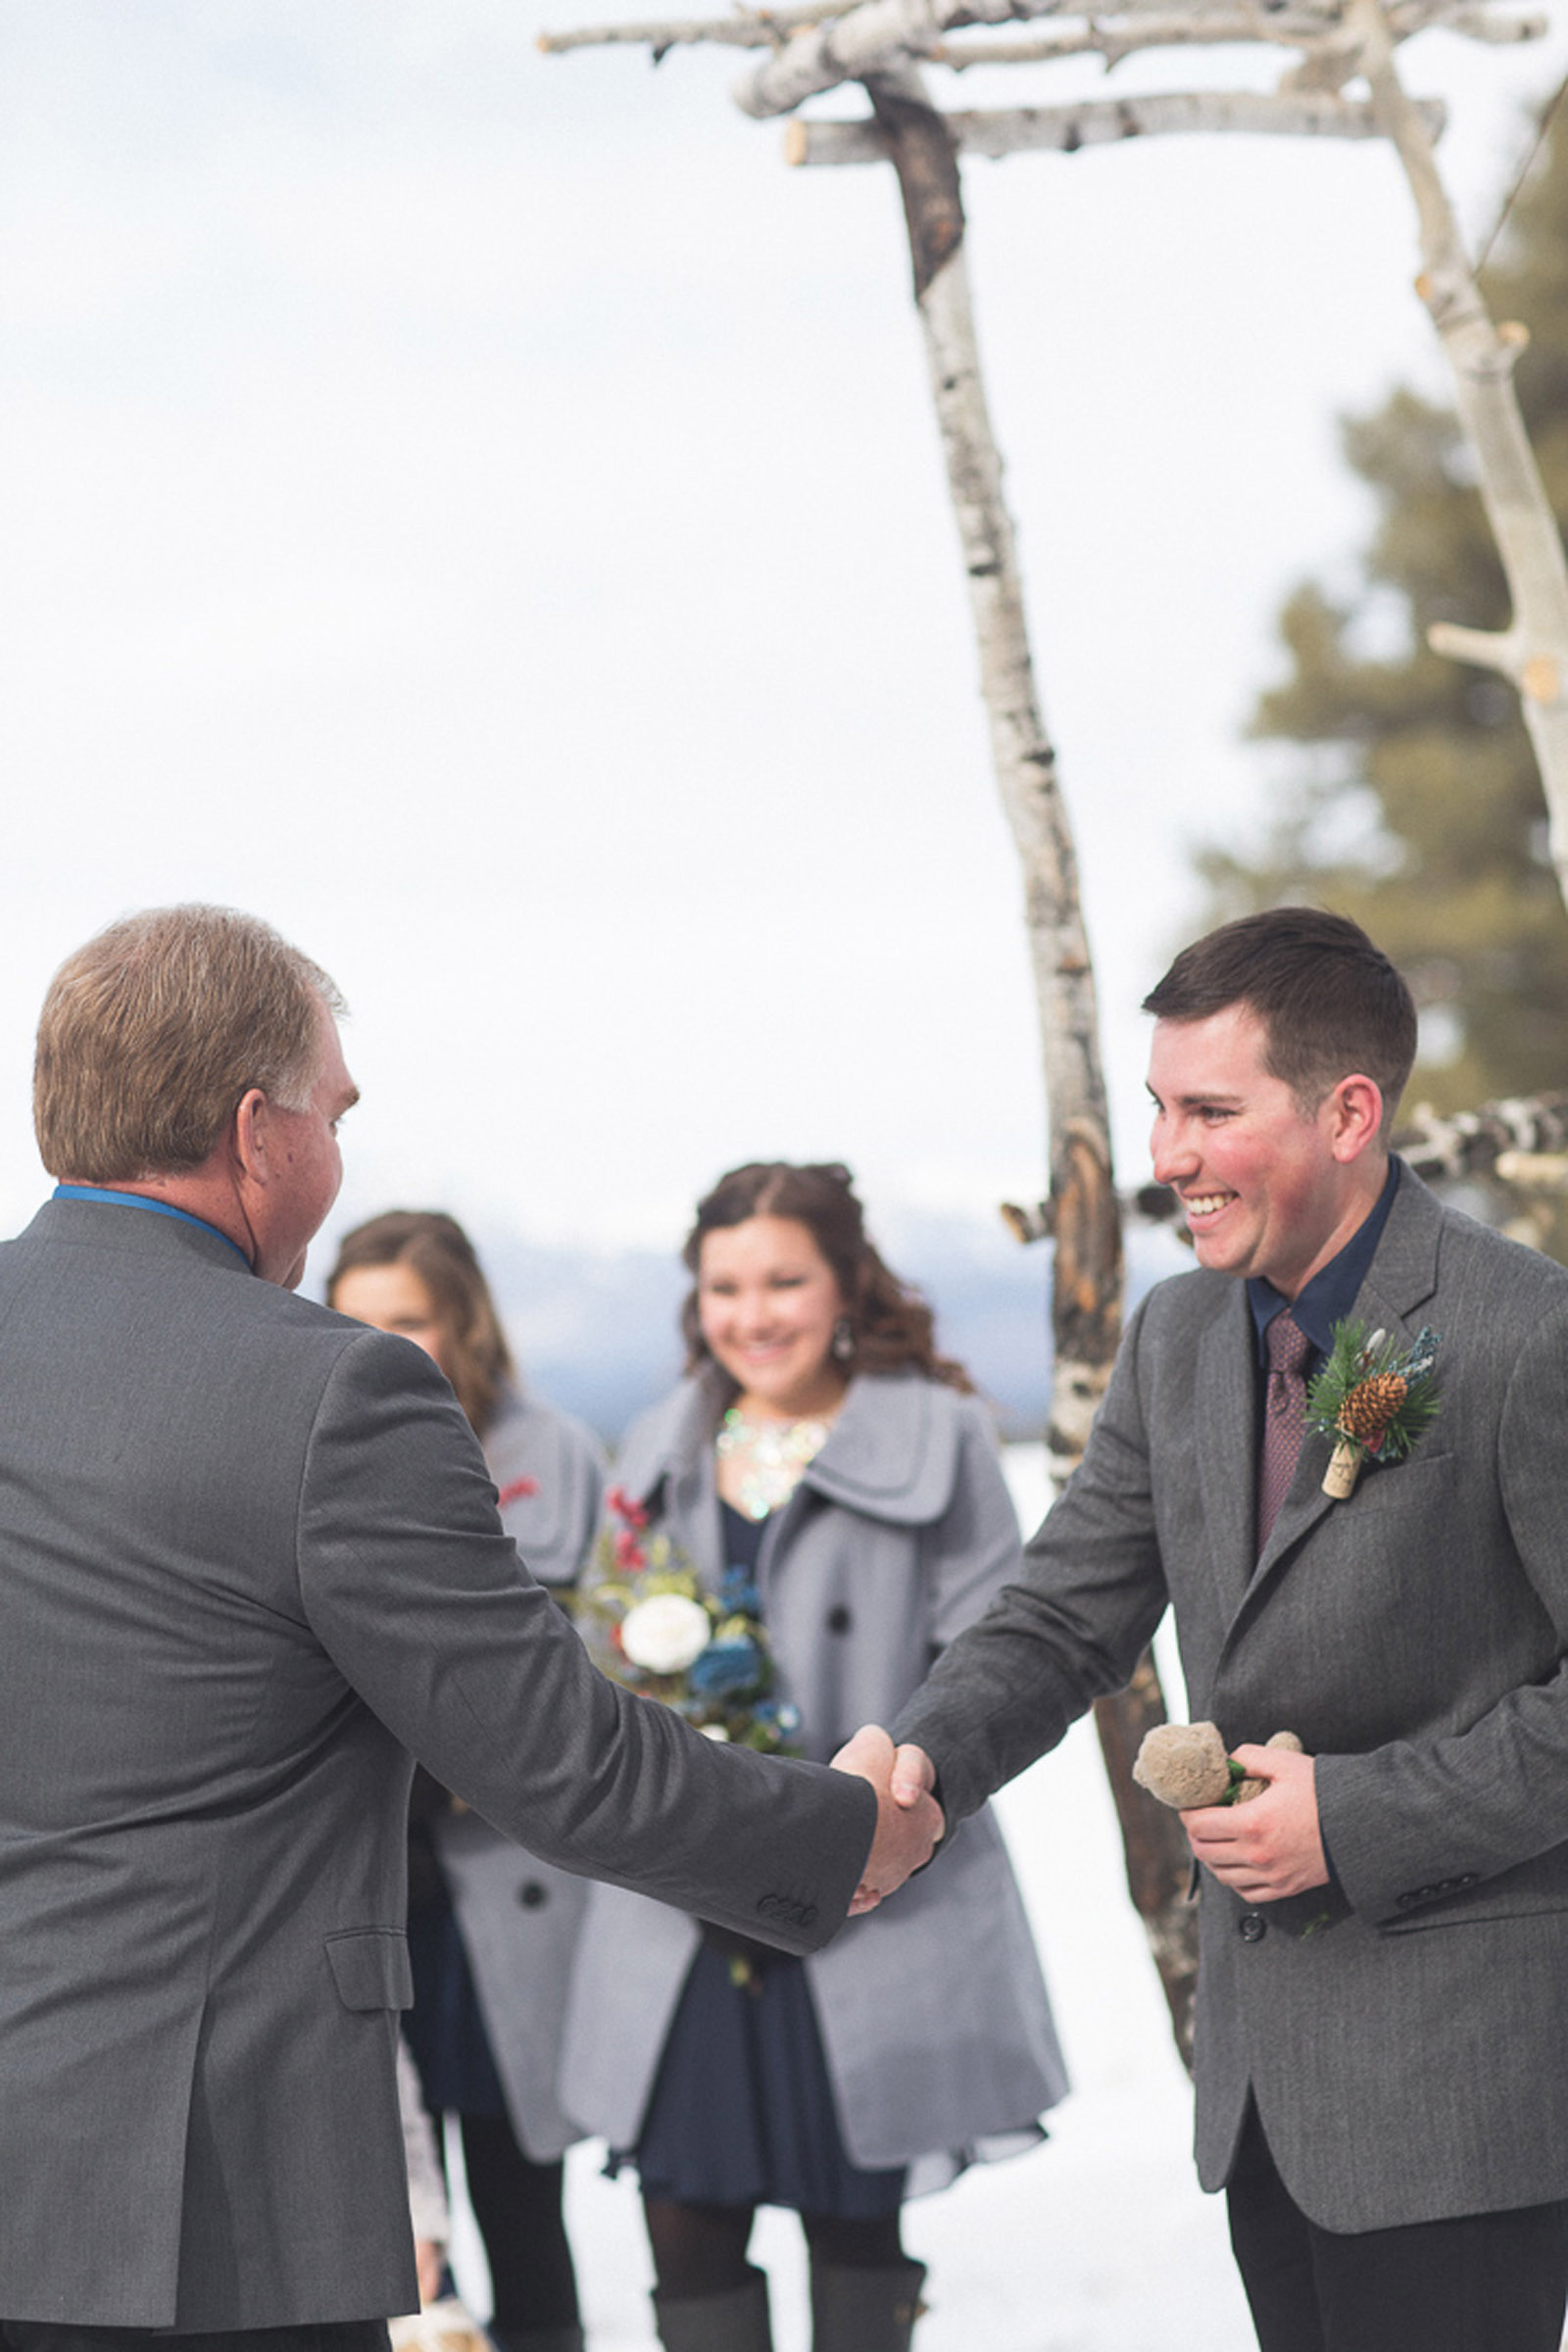 103-wedding-ceremony-in-pagosa-springs-wedding-photographer-snow-winter-wedding